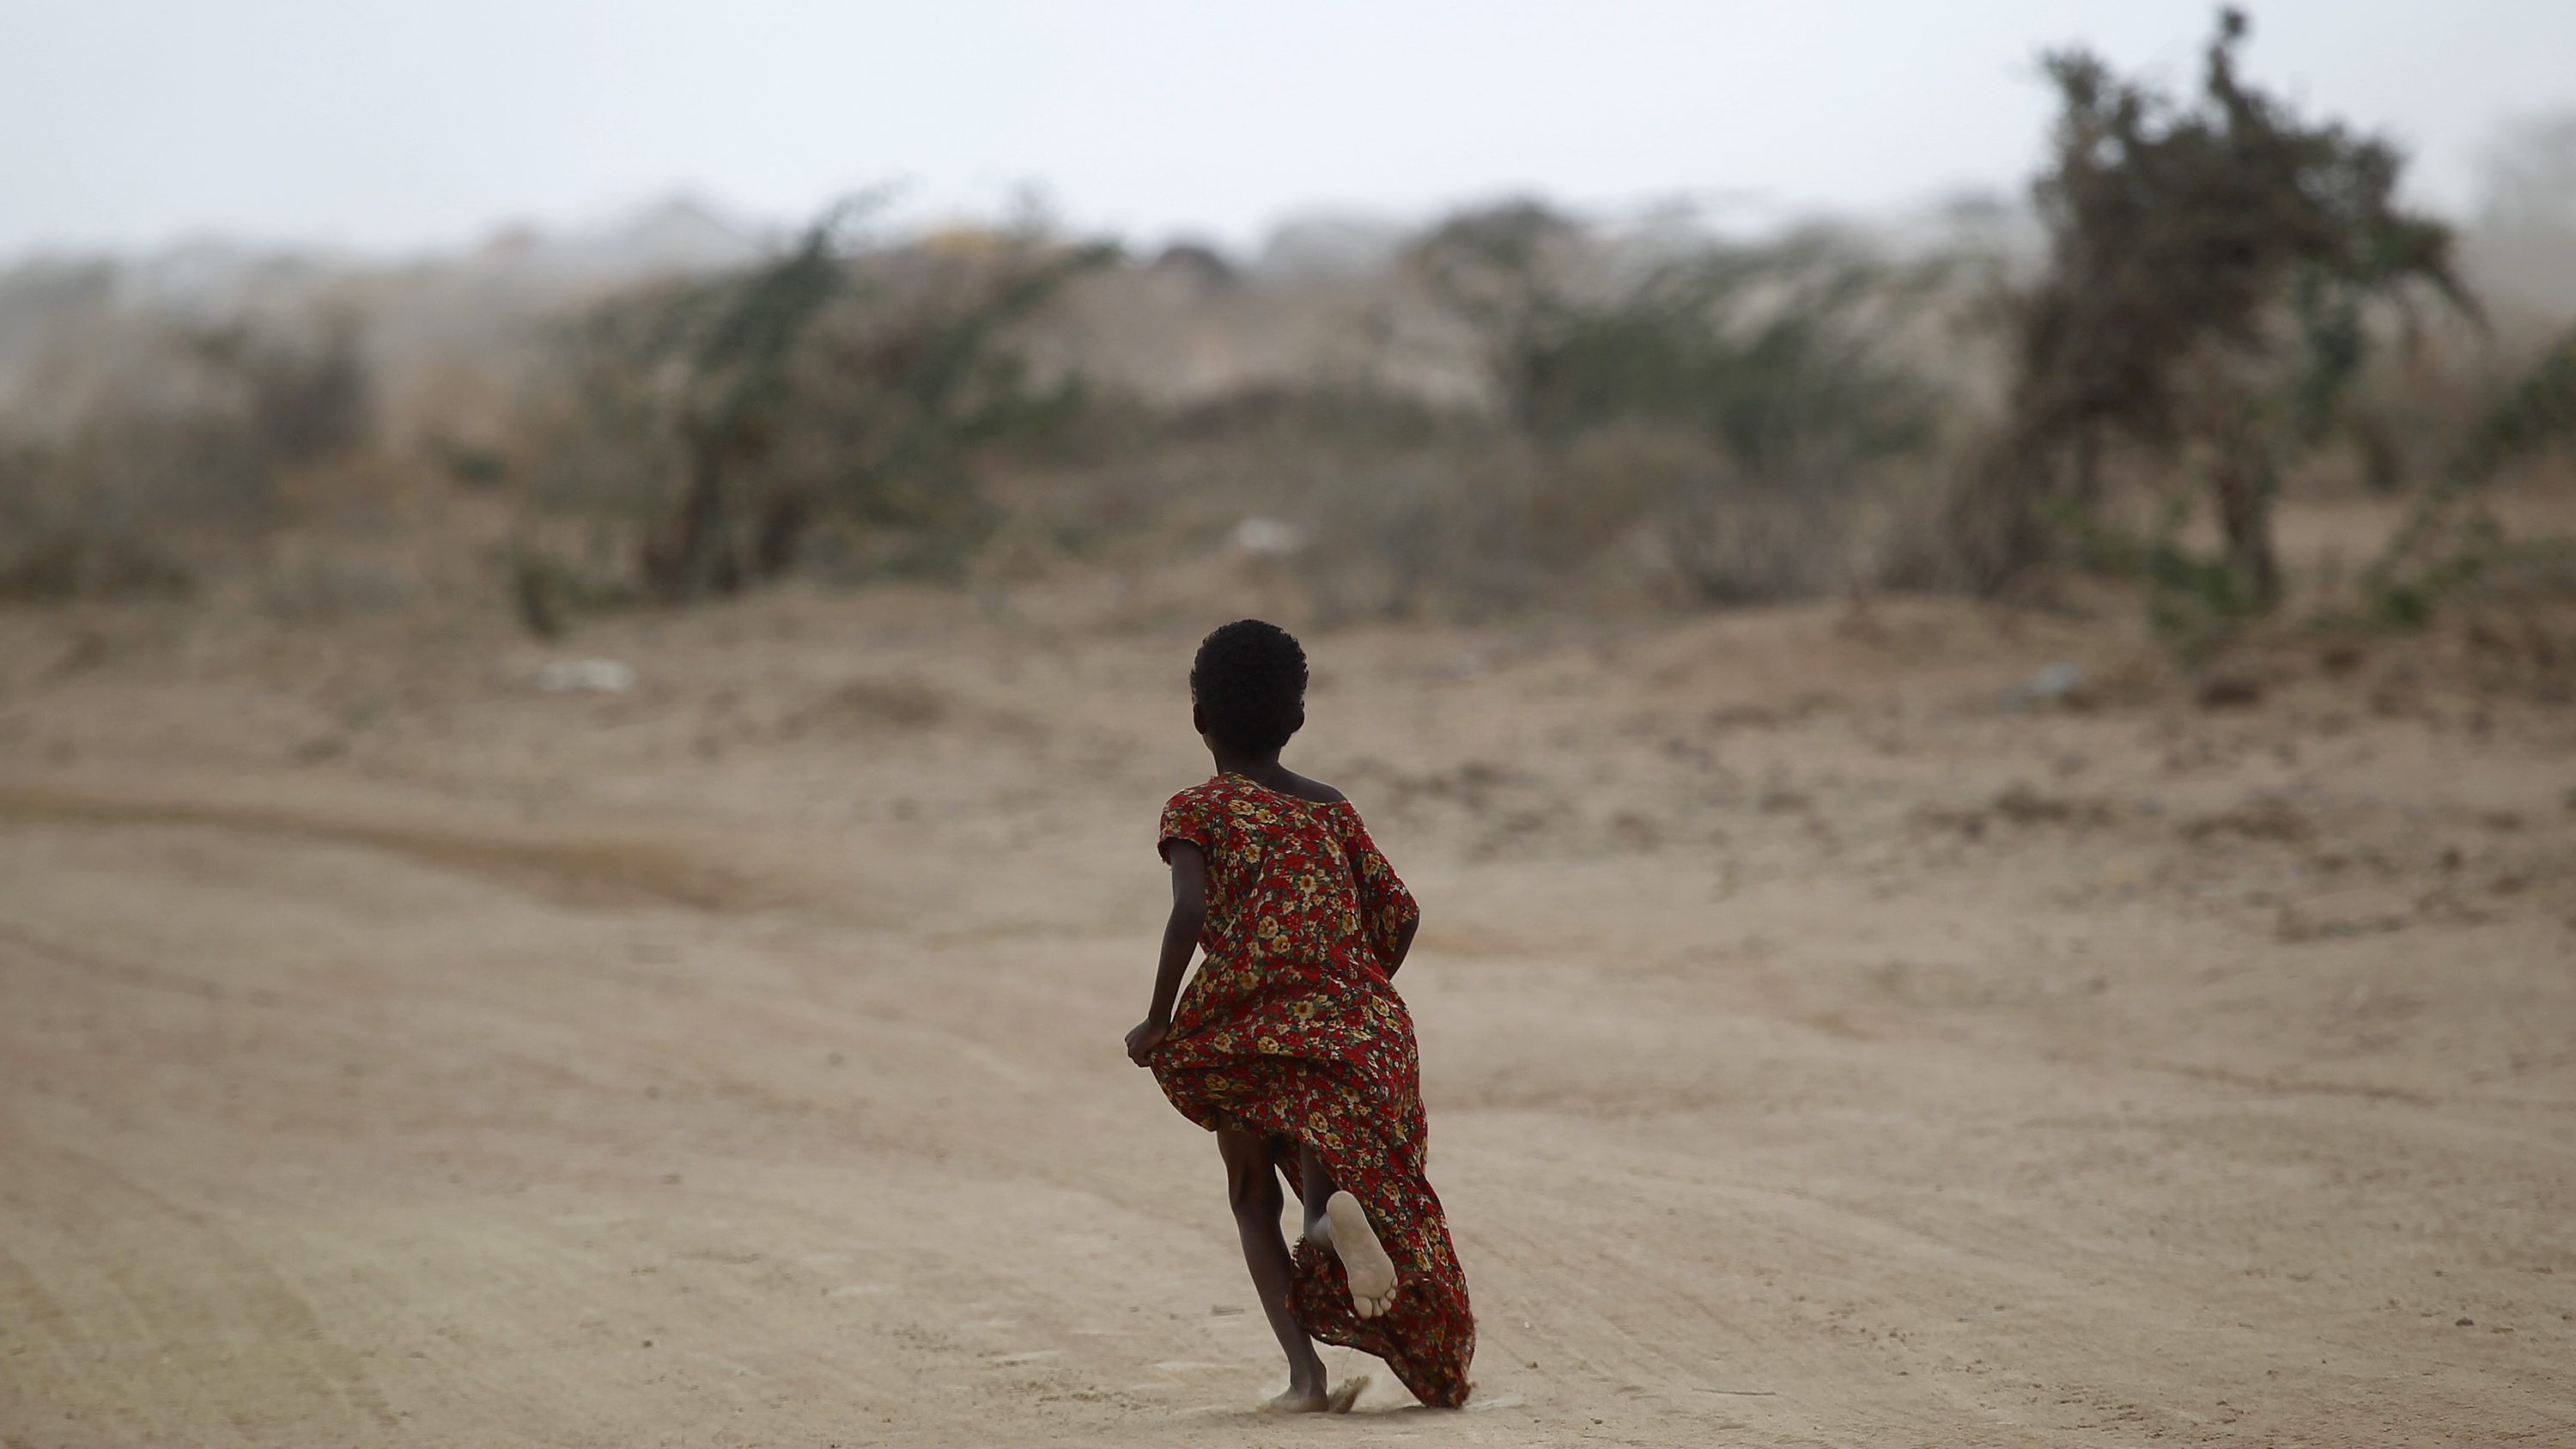 The UN famine appeal has reached only 20% of its target